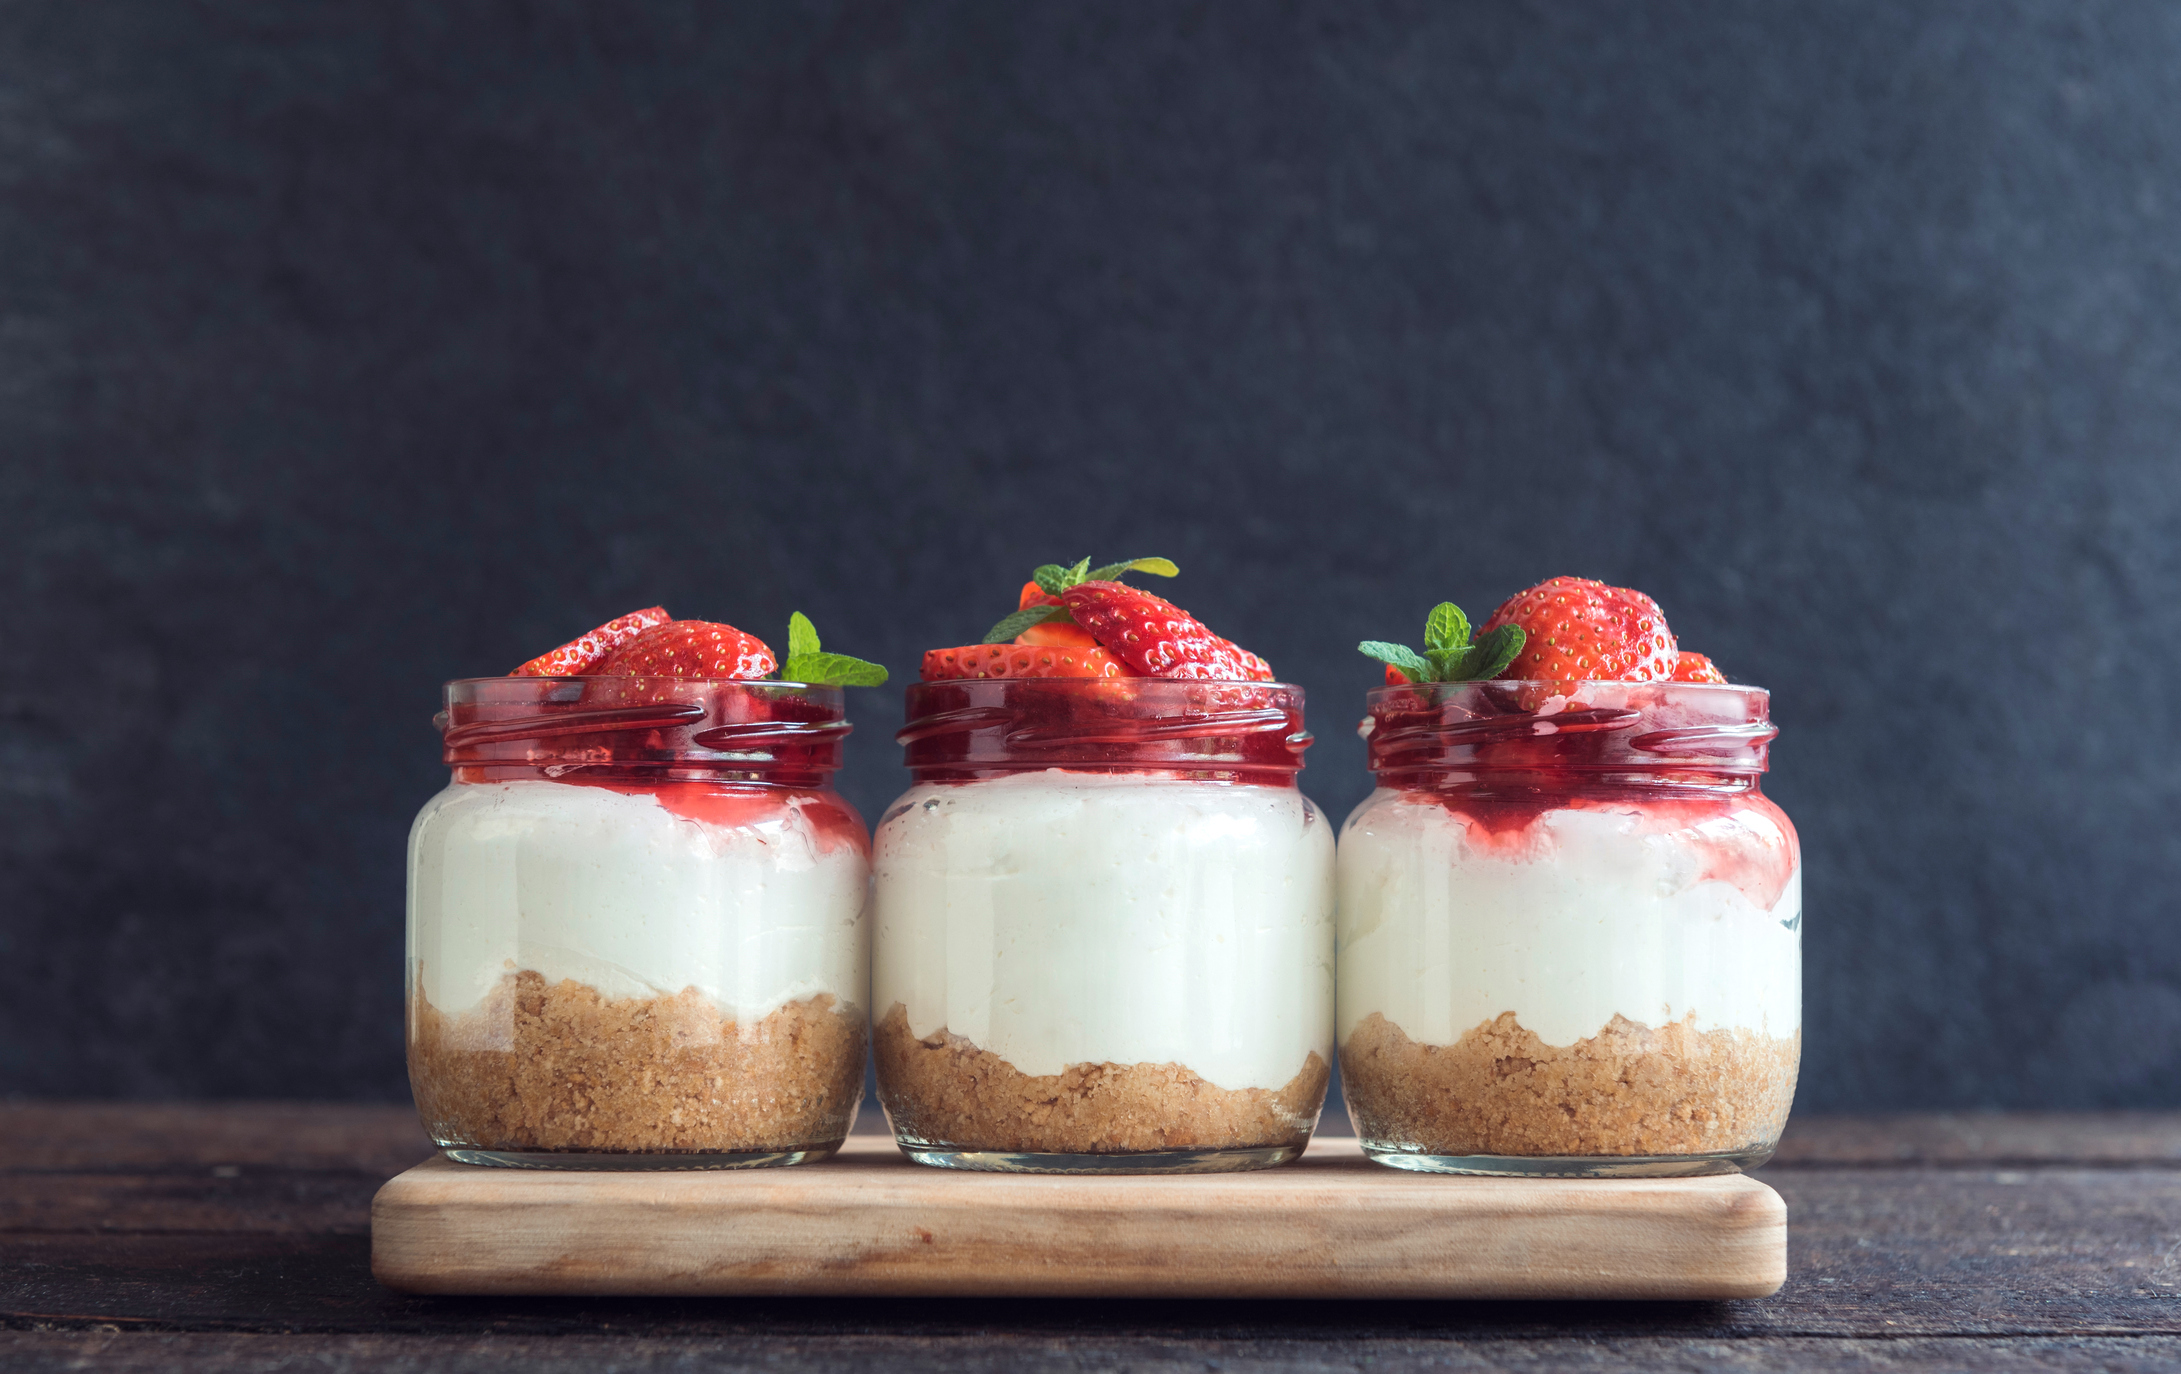 Sweet homemade cheesecake with strawberries in the jar on wooden background (Thinkstock/PA)